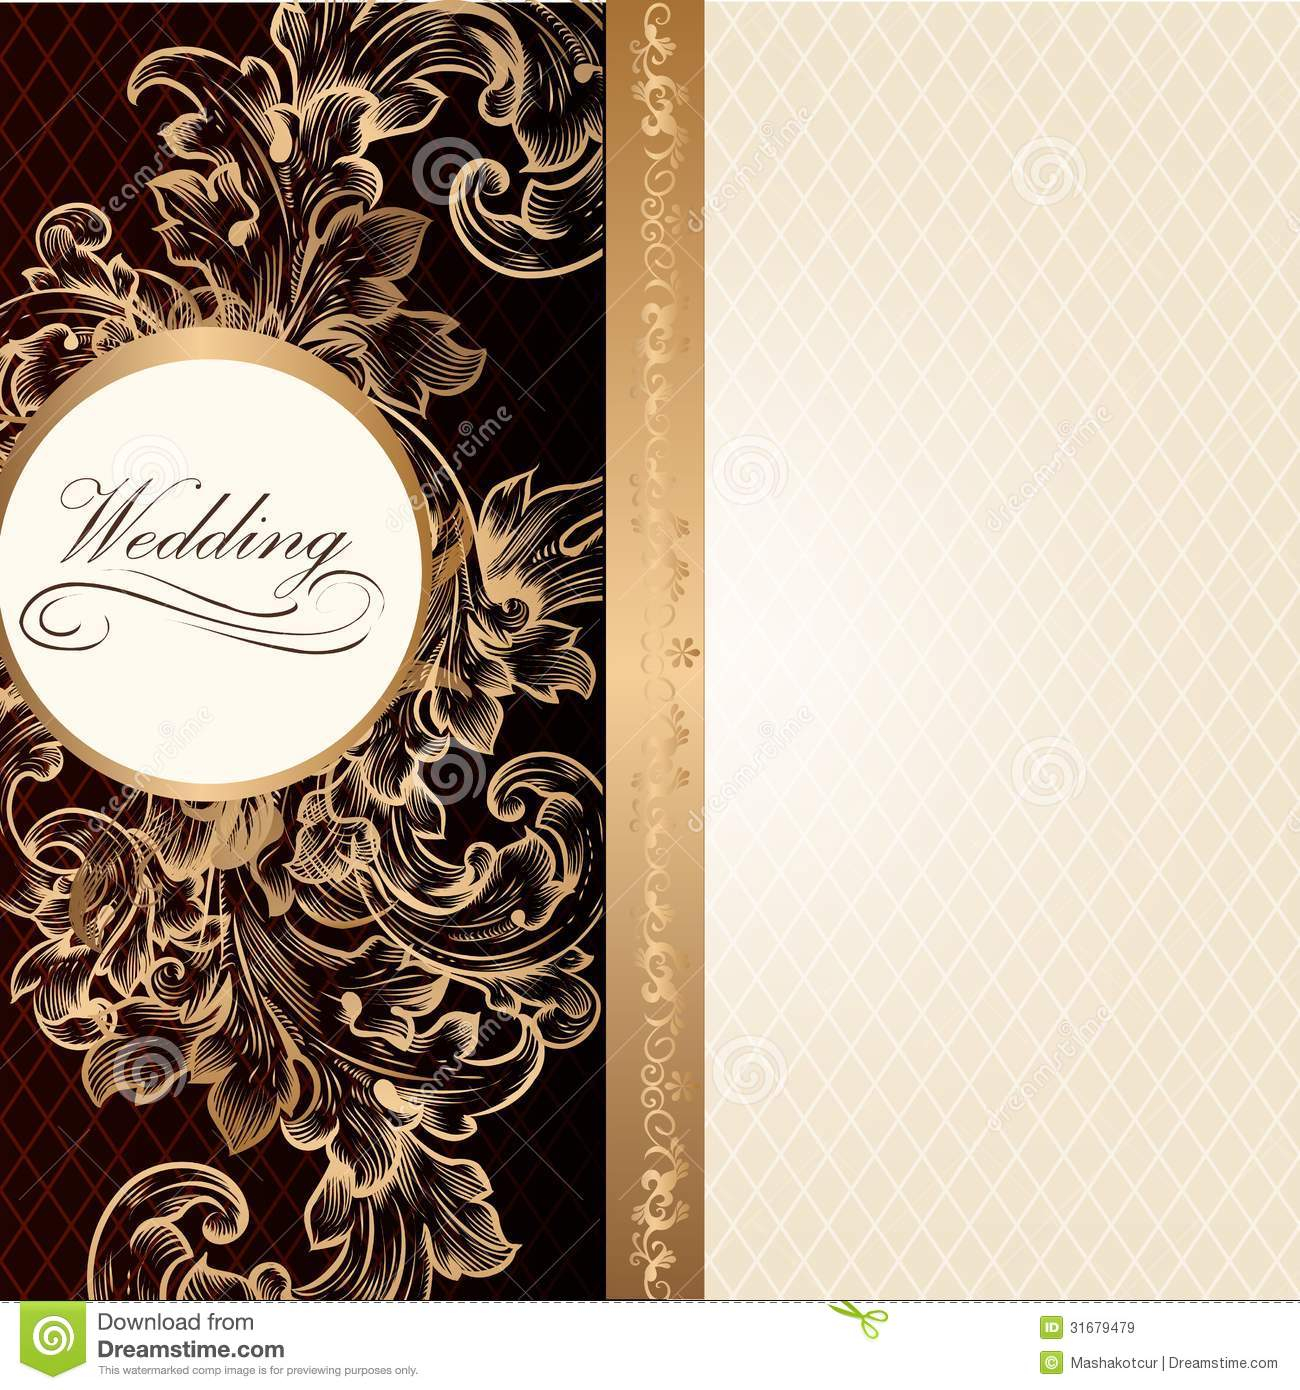 Wedding invitation vector illustration vector free download - Royalty Free Stock Photo Download Luxury Wedding Invitation Card